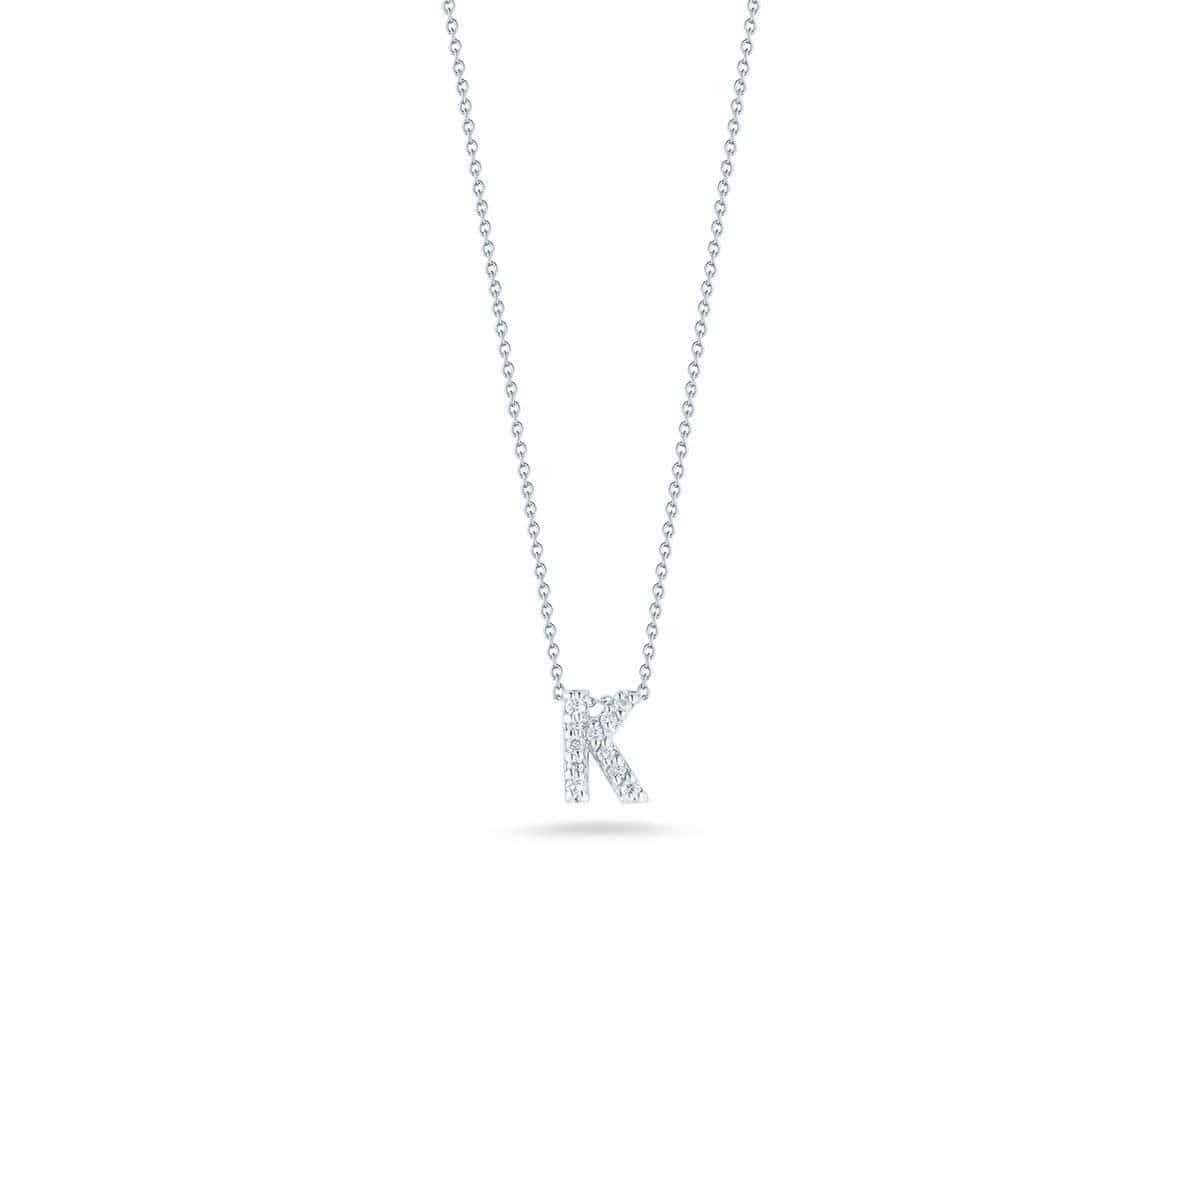 18k White Gold & Diamond Love Letter K Necklace - 001634AWCHXK-Roberto Coin-Renee Taylor Gallery